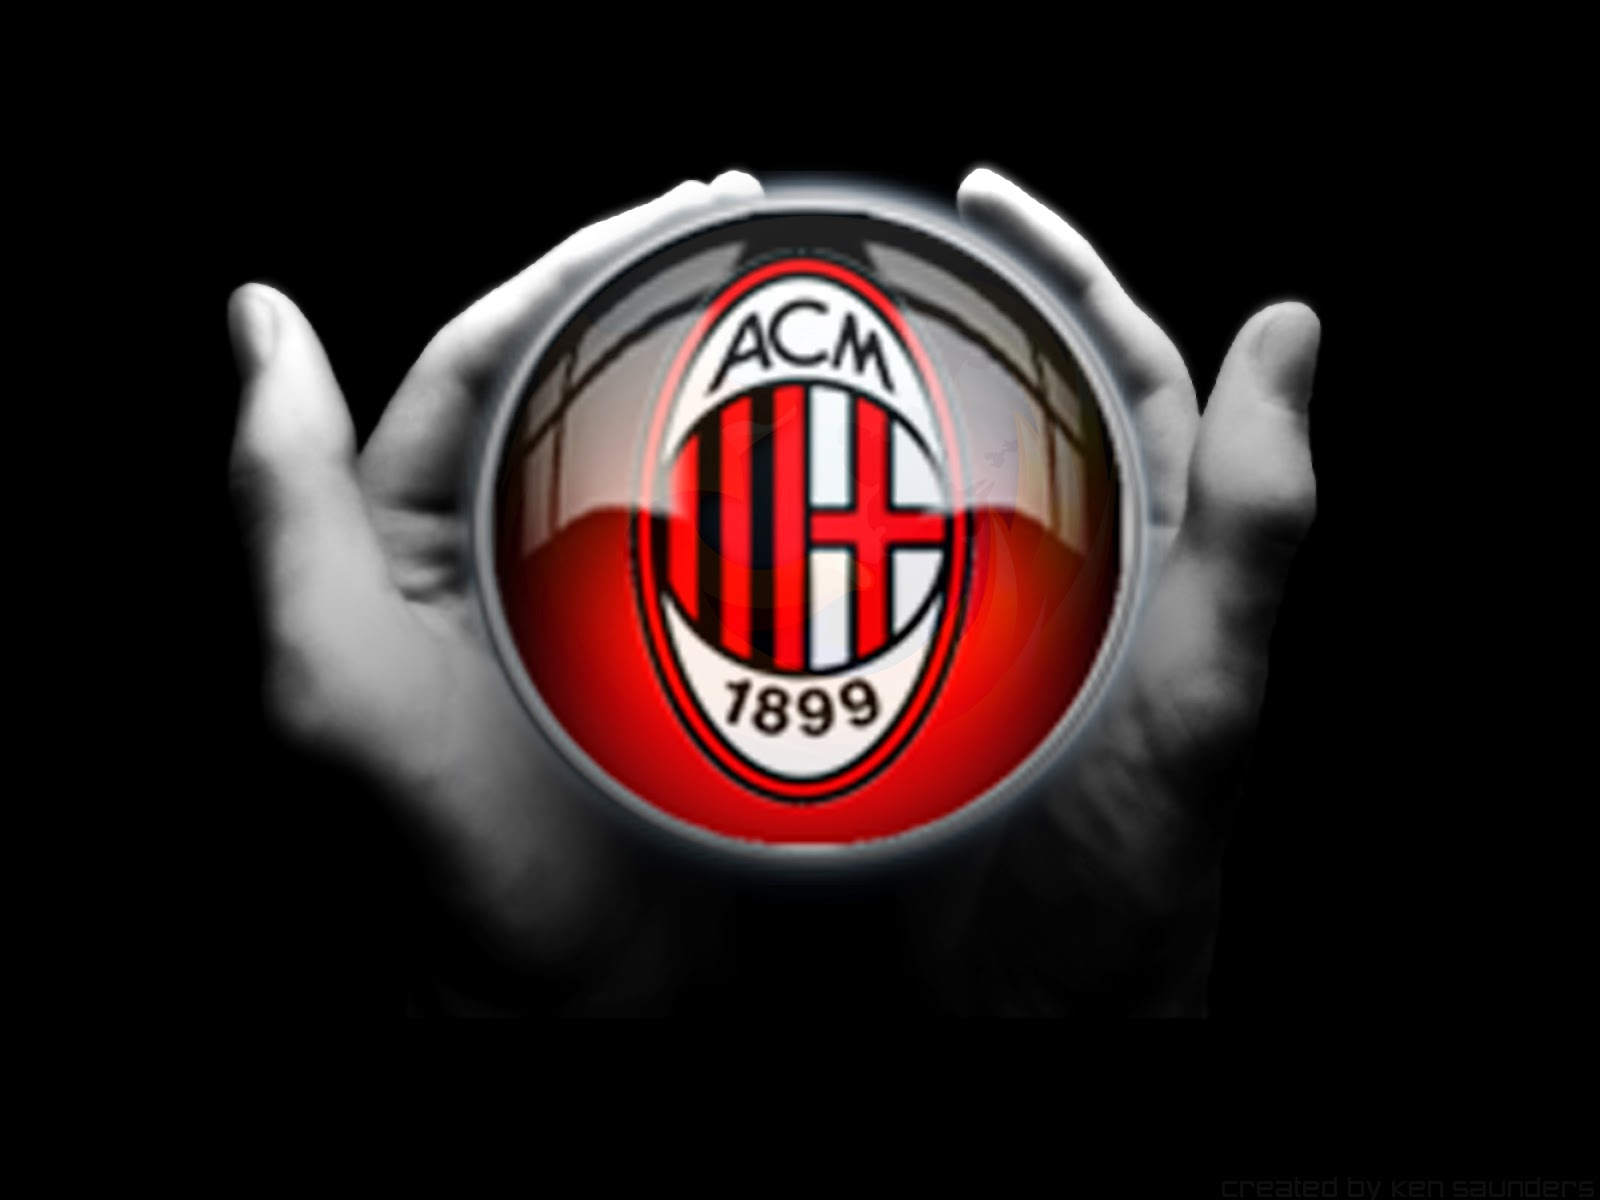 The Fresh Wallpaper AC Milan Football Club Wallpaper